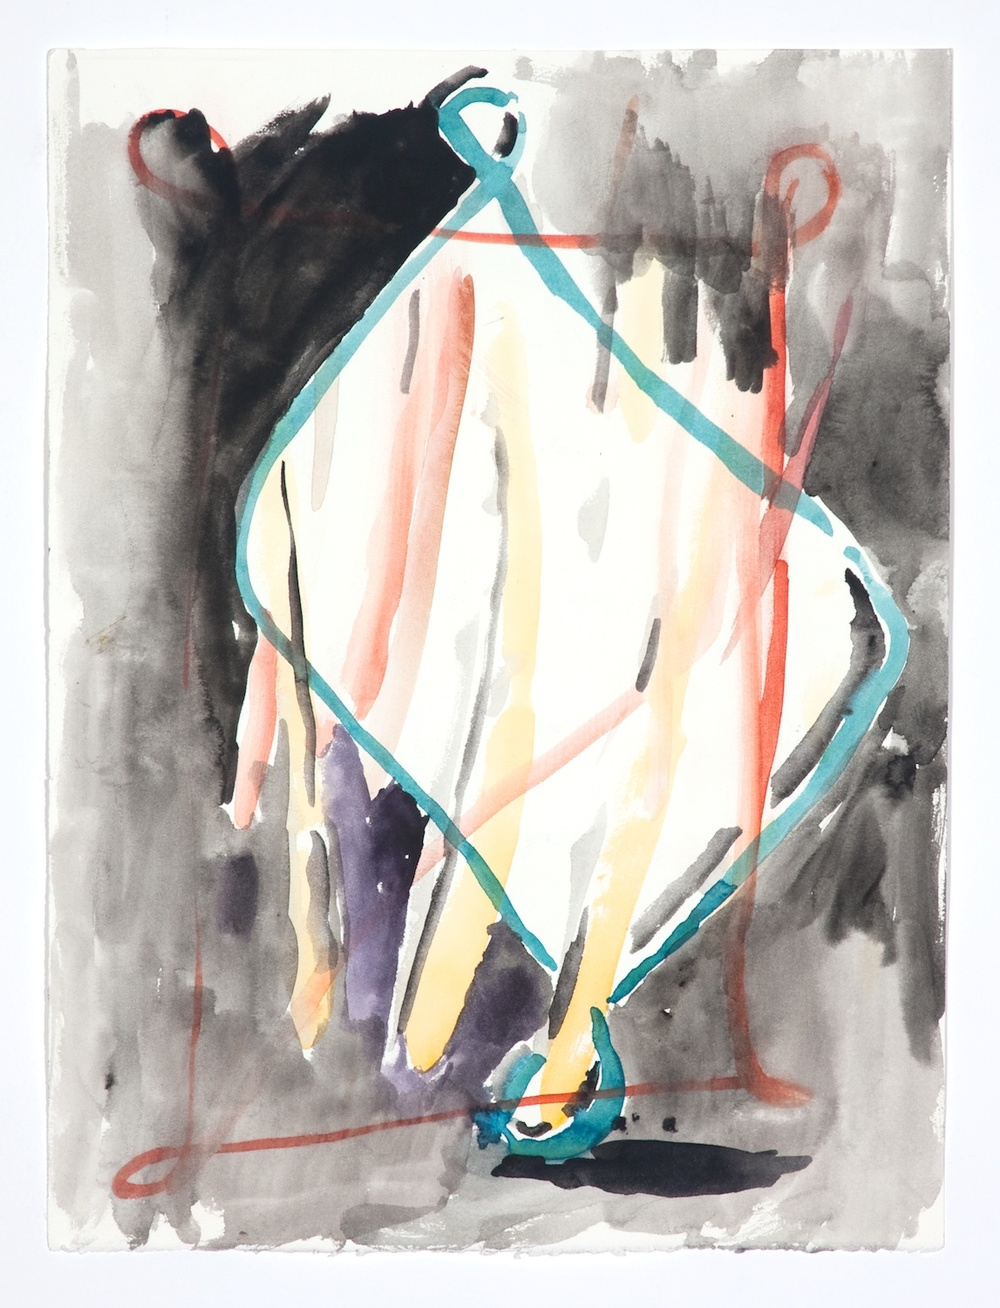 Jon Pestoni  Untitled  2009 Gouache on paper 15h x 11 ¼w in JP056